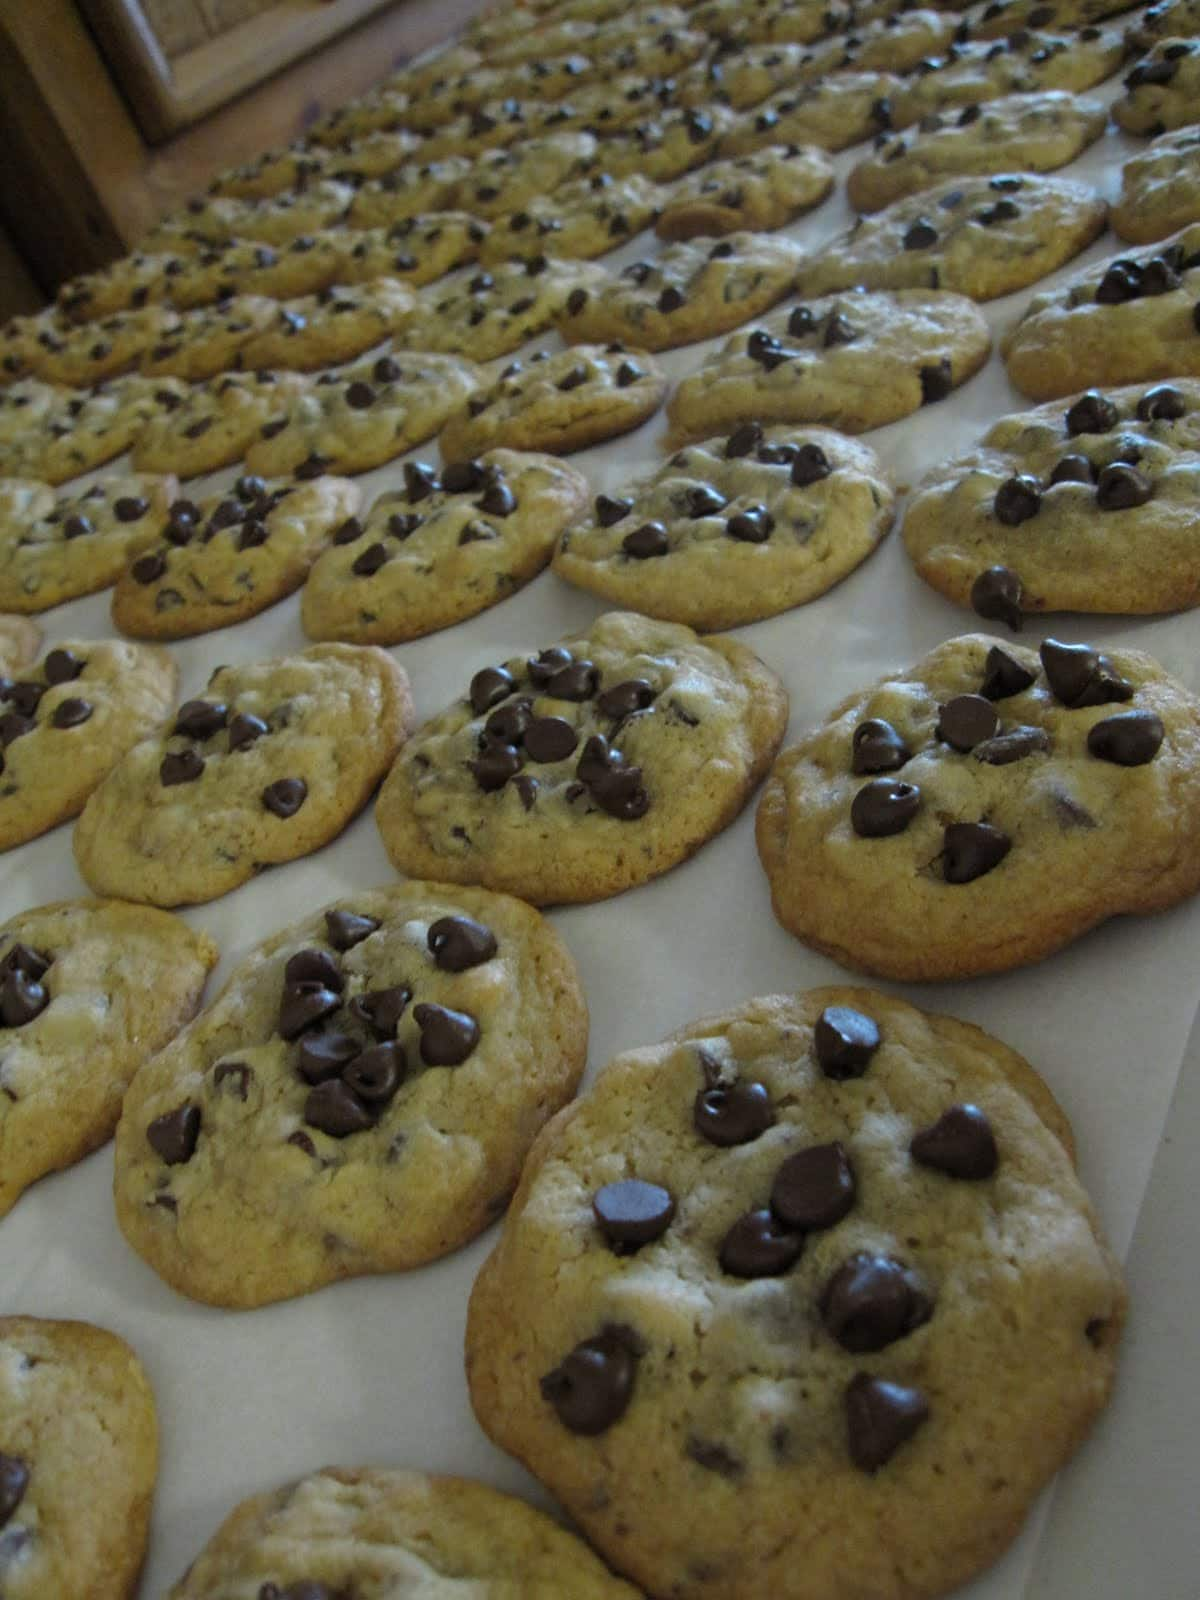 A batch of chocolate chip cookies on parchment paper